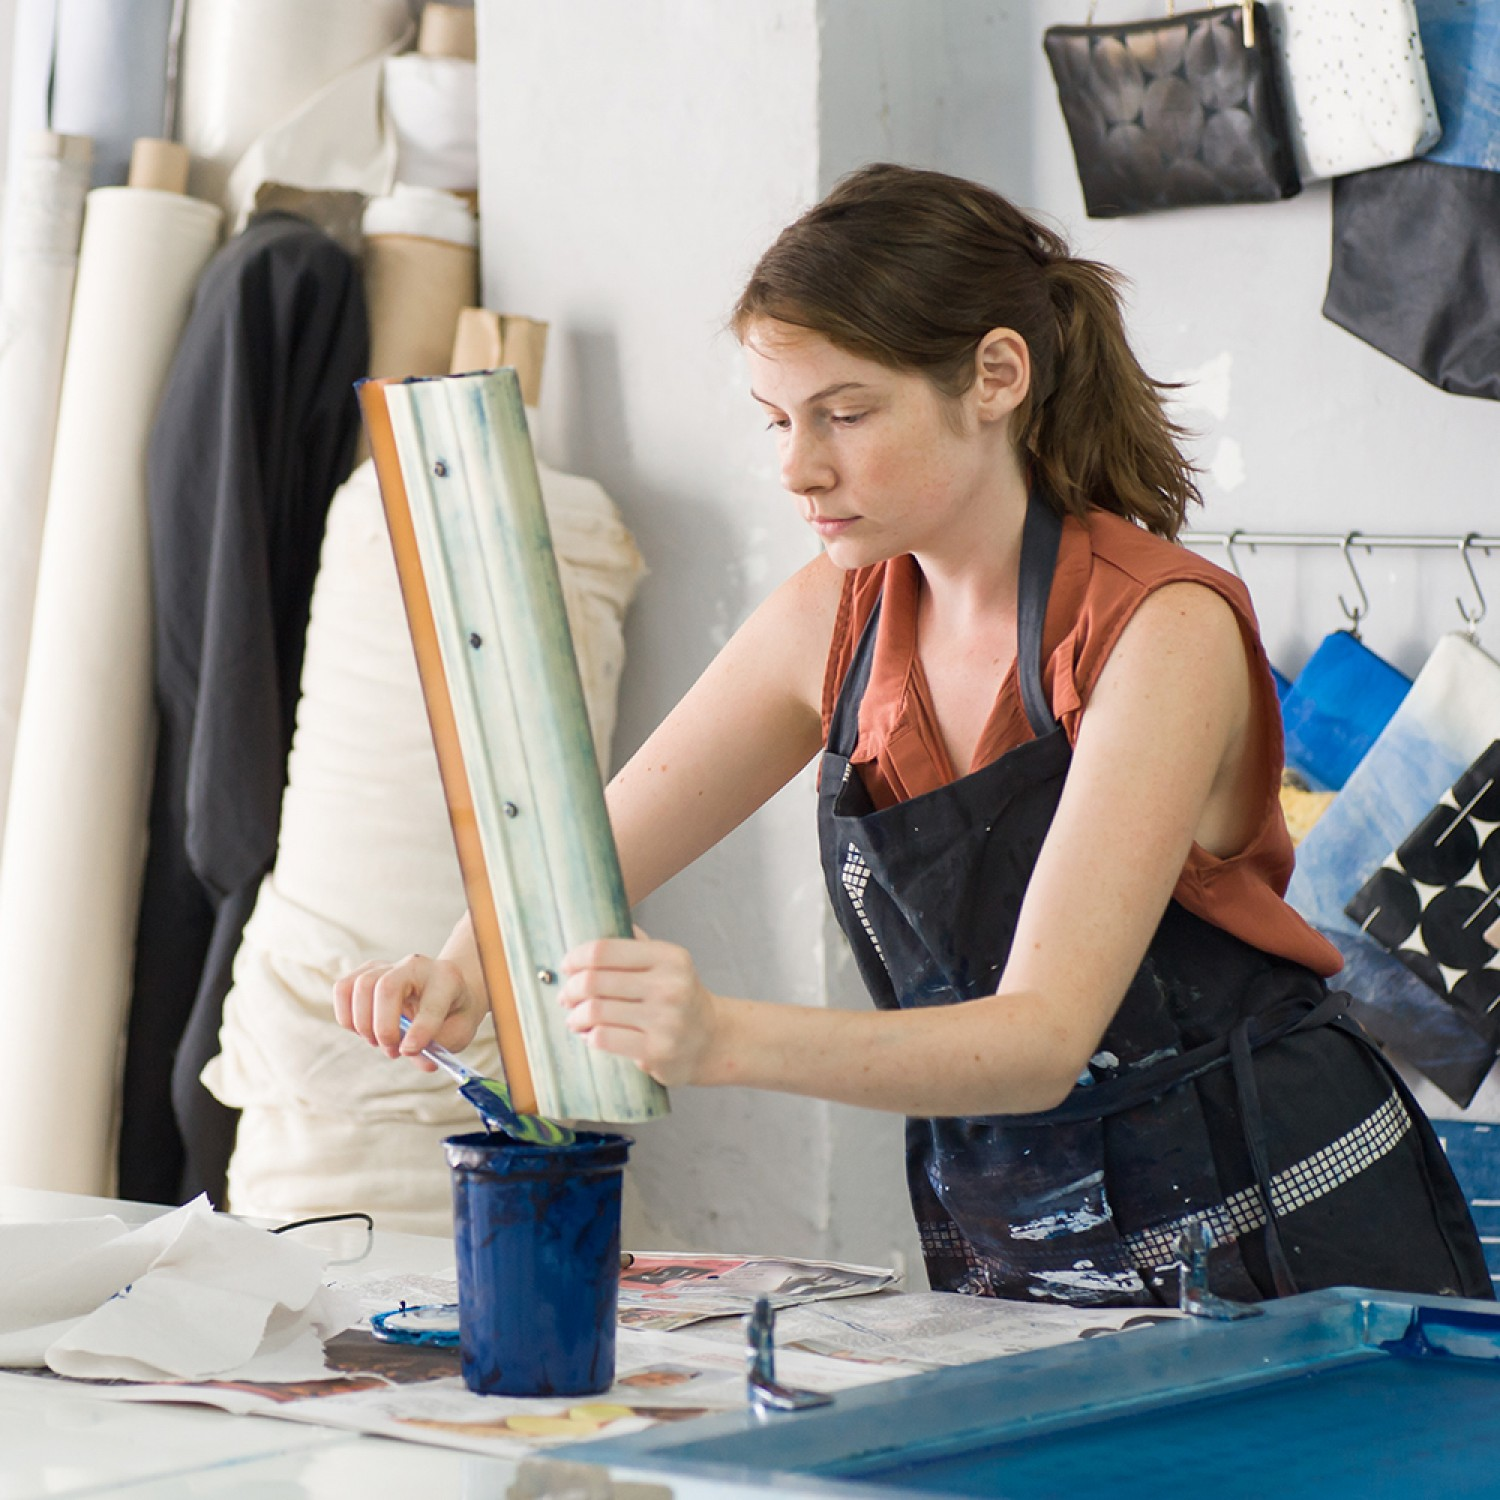 Lee Coren handcrafts her pieces using a unique screen printing technique.